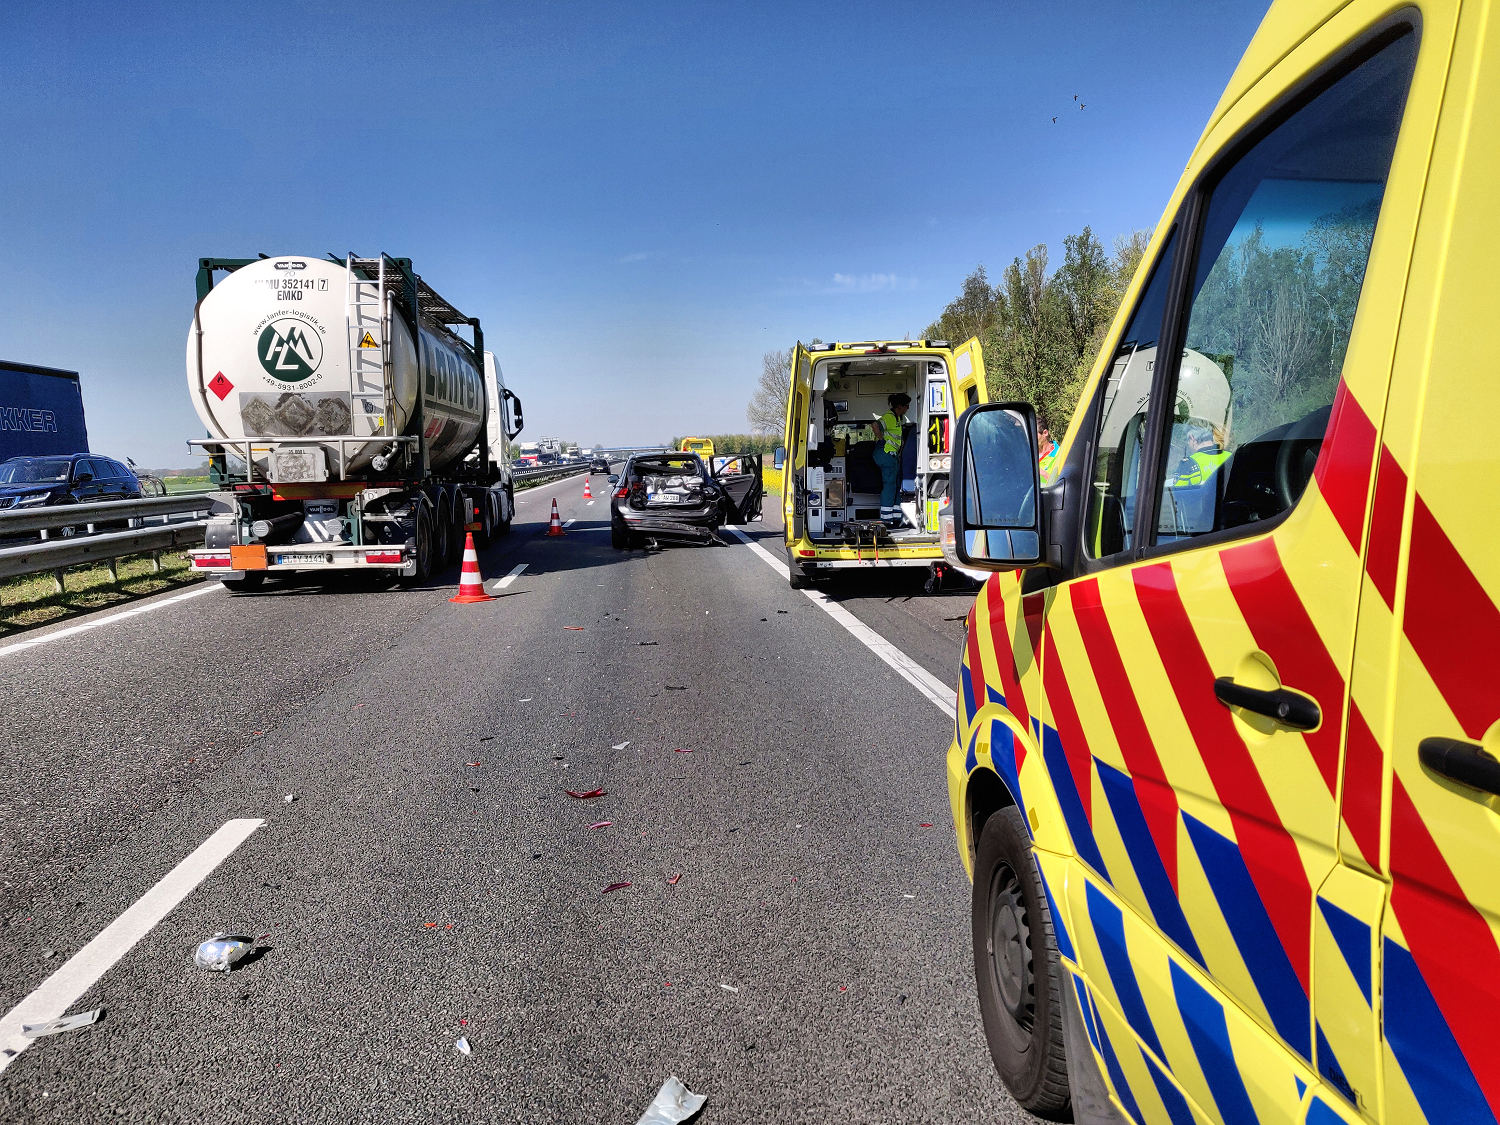 Accident on the A59 motorway at Waspik, on 18 April 2019 (photograph: Marcel van Dorst)